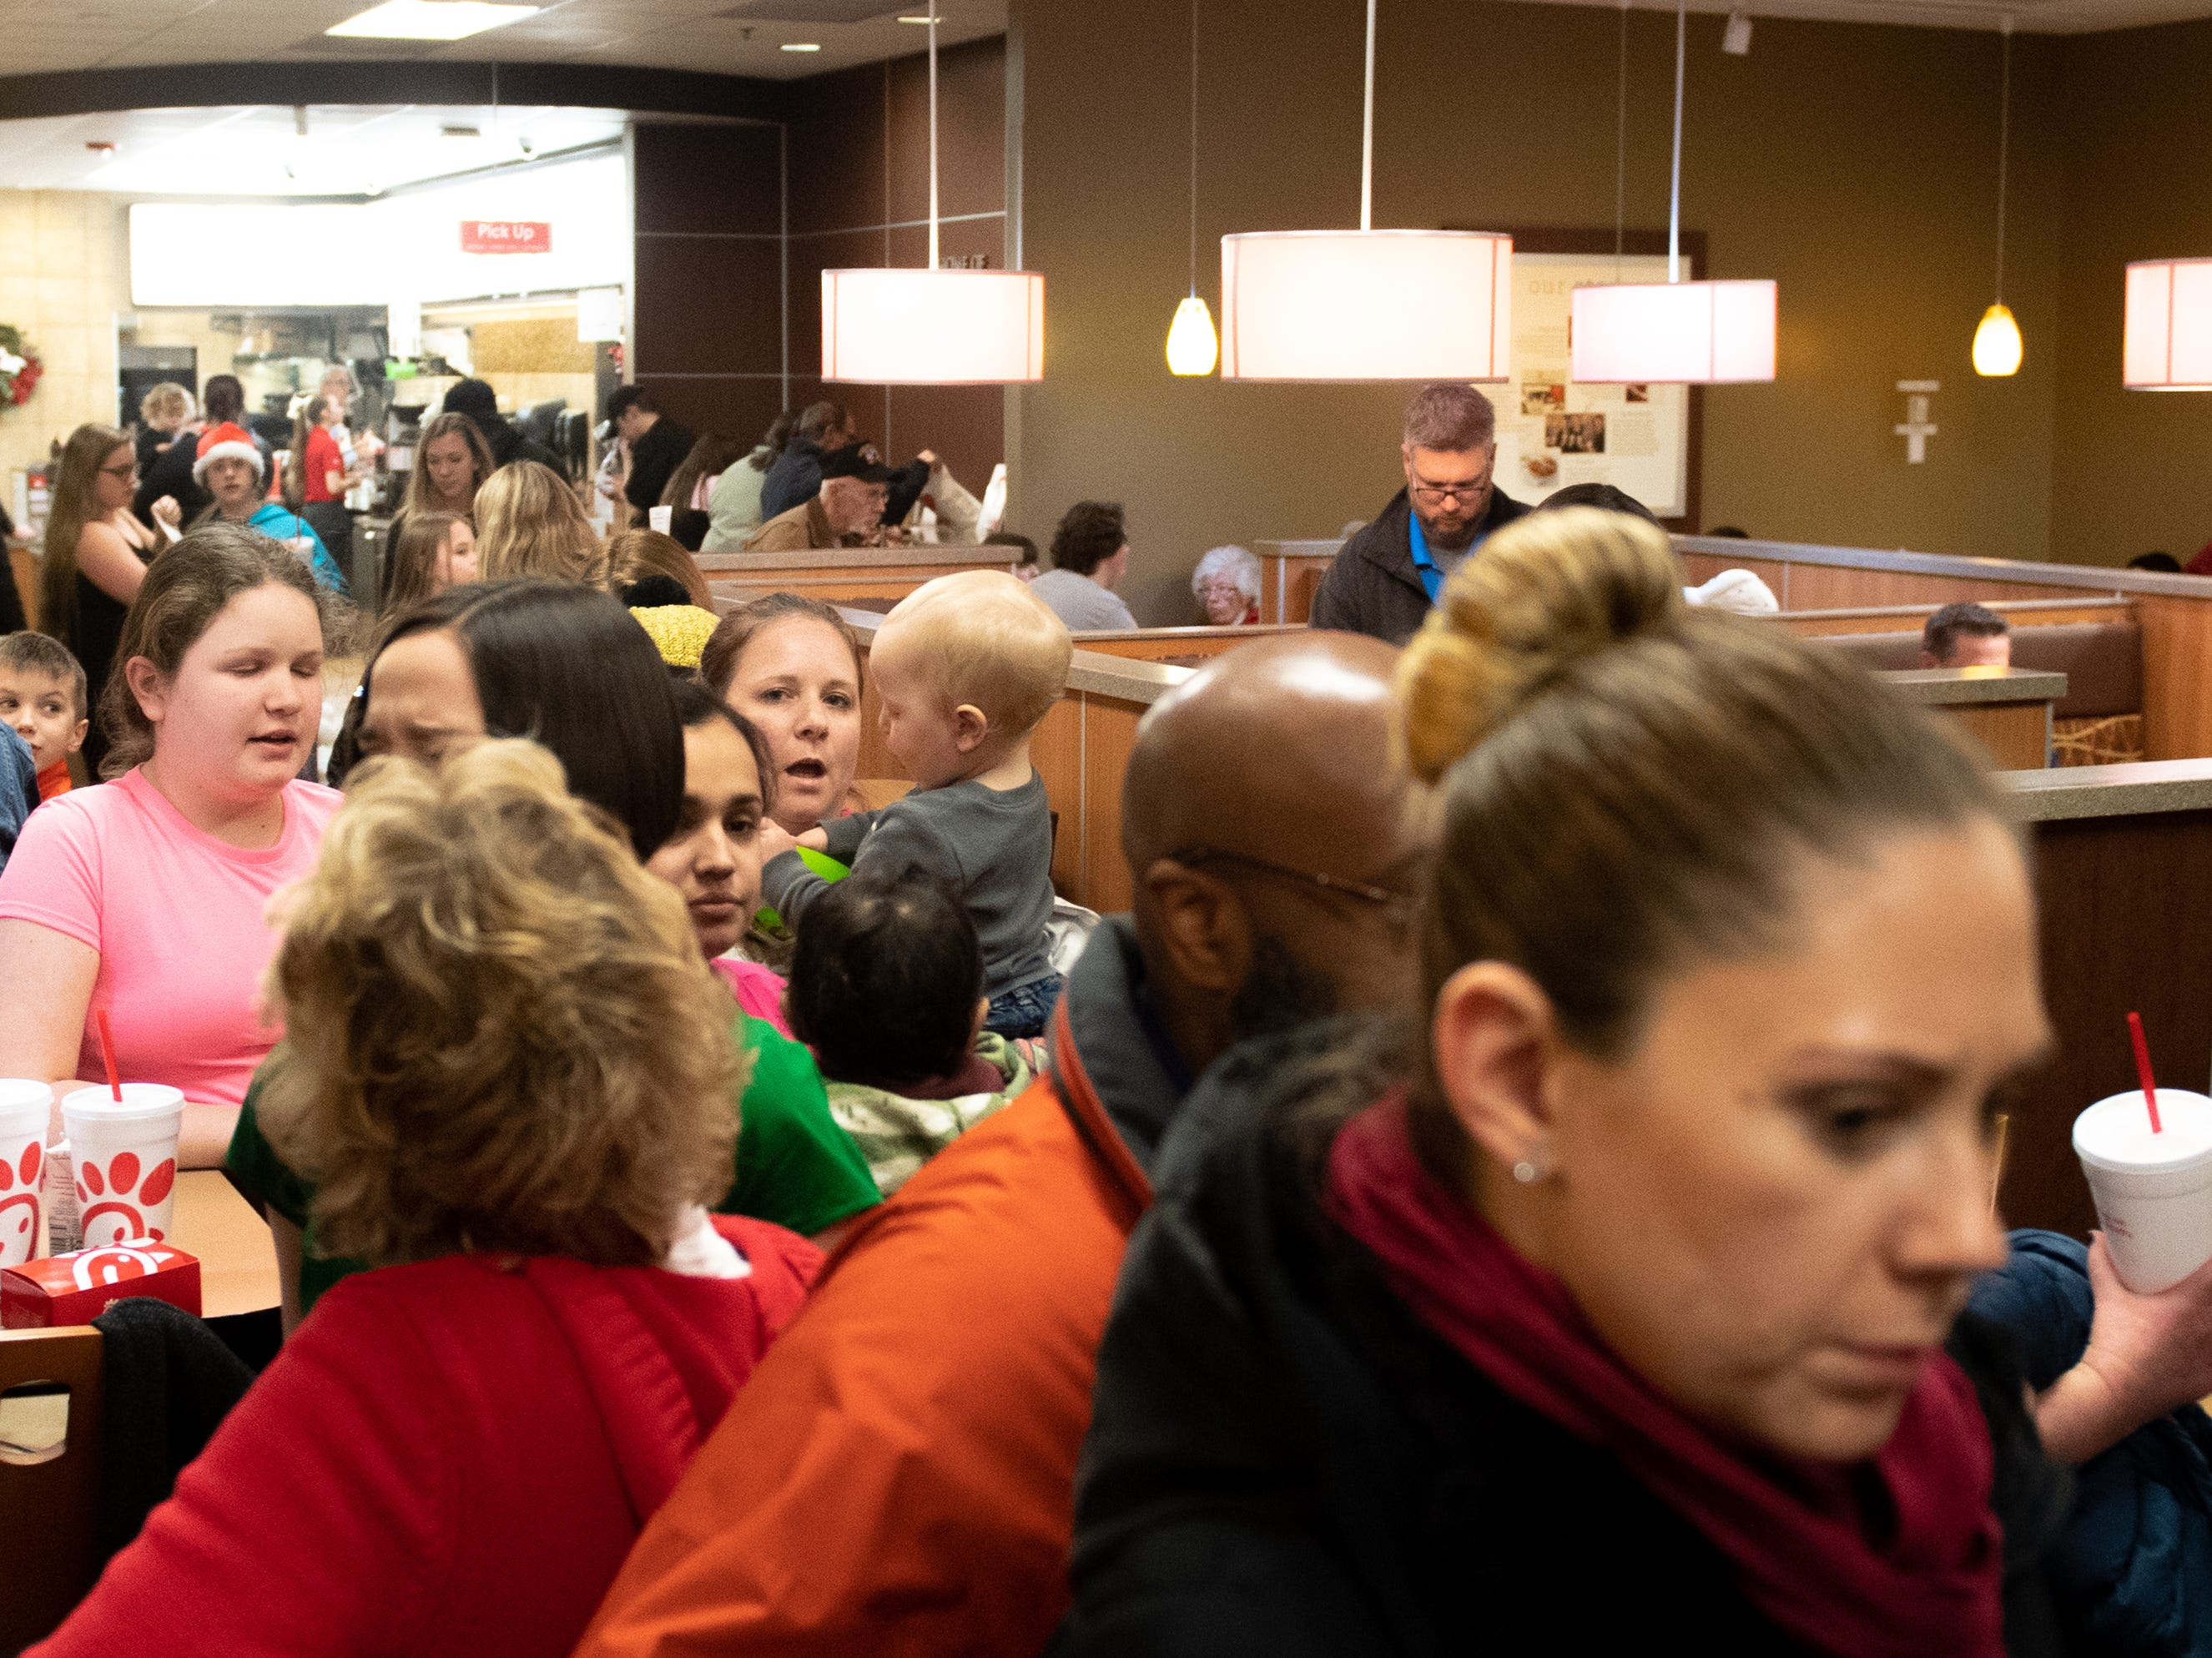 People feeling the holiday spirit came from all over York County to partake in the Dinner with Santa and Santa Cow event at Chick-fil-A in East York. They all waited patiently to tell the big man in red what they wanted for Christmas, December 19, 2018.